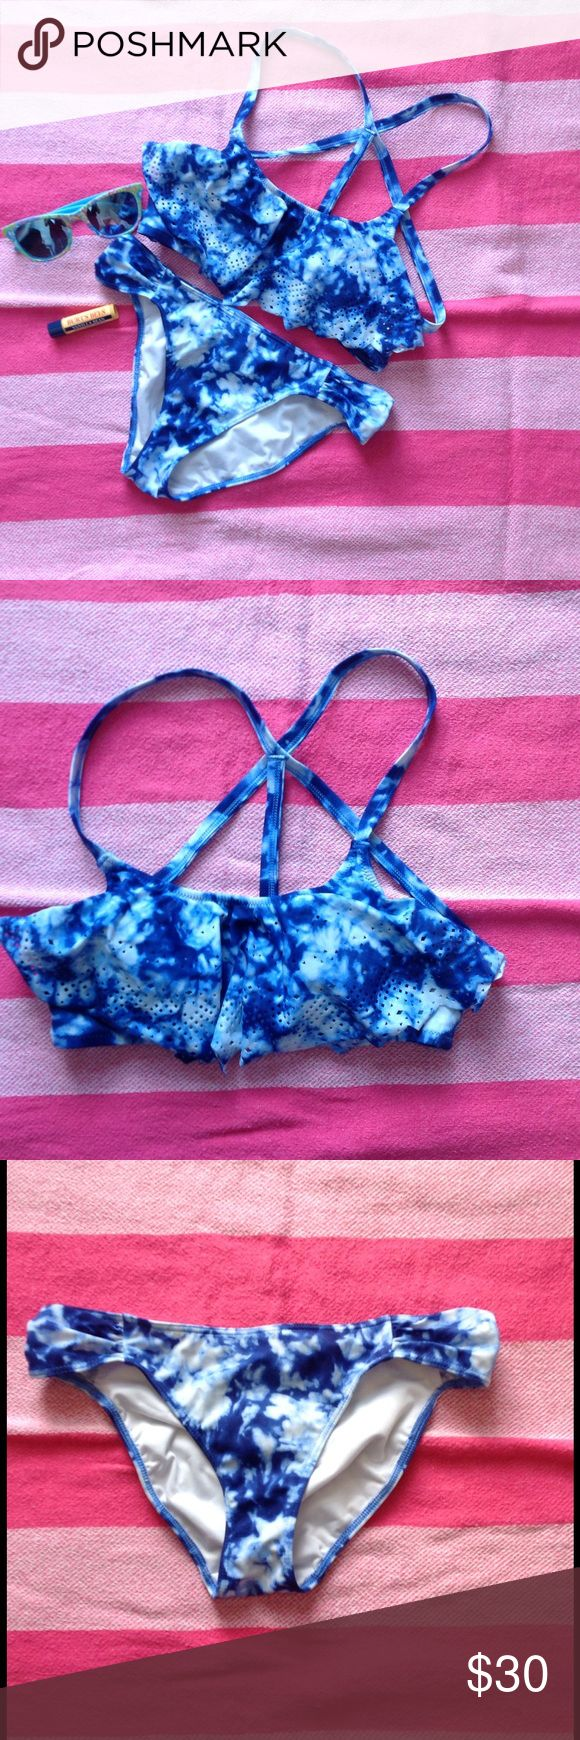 VS Pink flounce bikini Blue tie-dye flounce bikini. Strappy back bikini top with ruched-side bikini bottoms. Tag has been cut out of top but size is comparable to bottoms which are XS. PINK Victoria's Secret Swim Bikinis